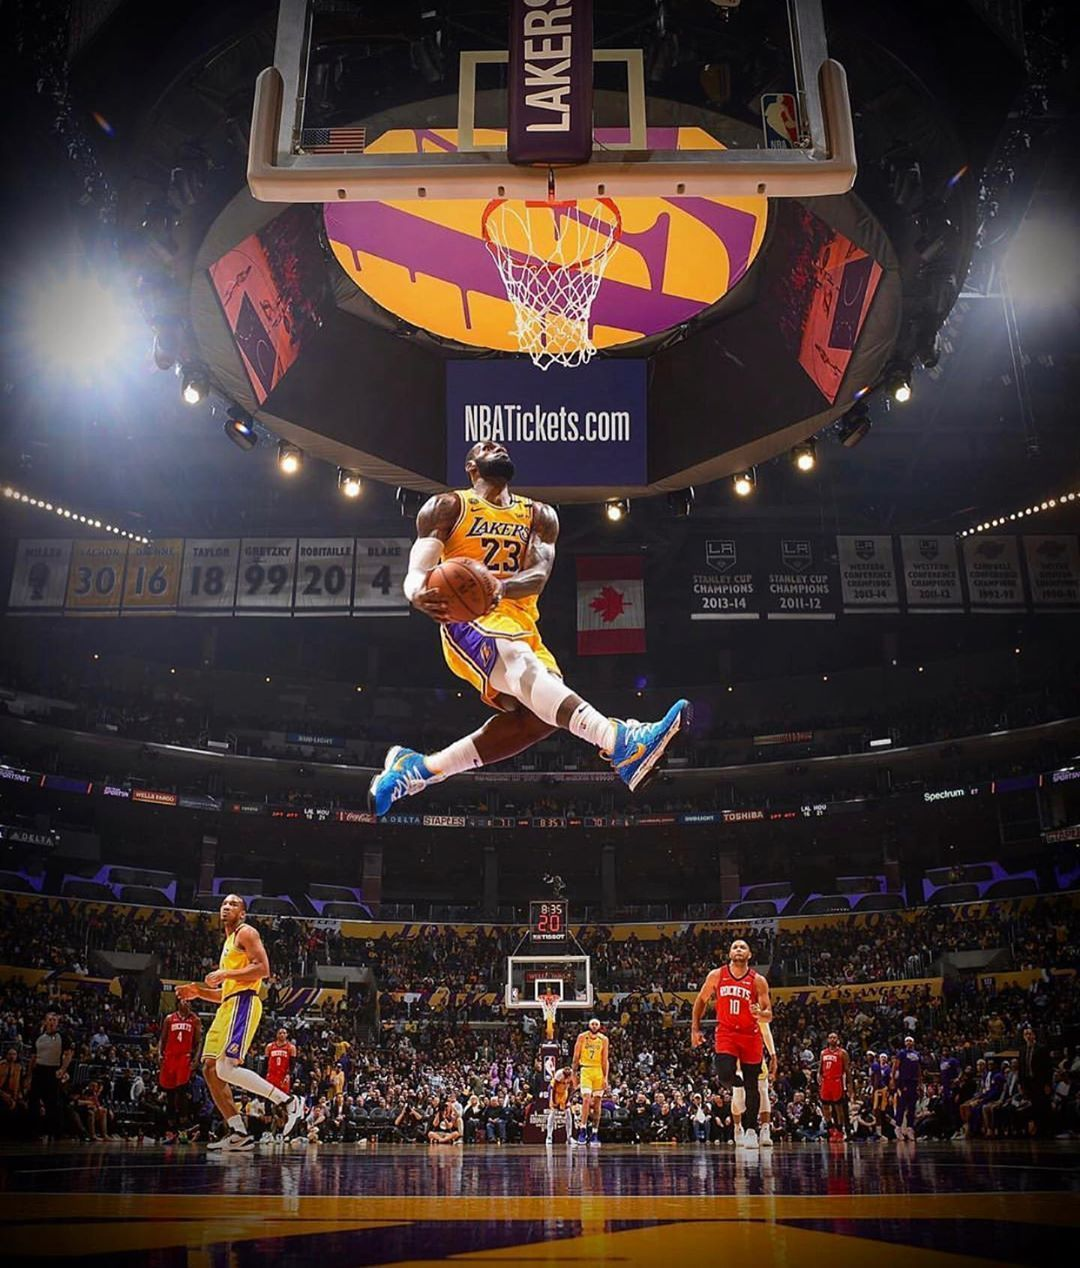 Lebron James Dunking Wallpapers Top Free Lebron James Dunking Backgrounds Wallpaperaccess